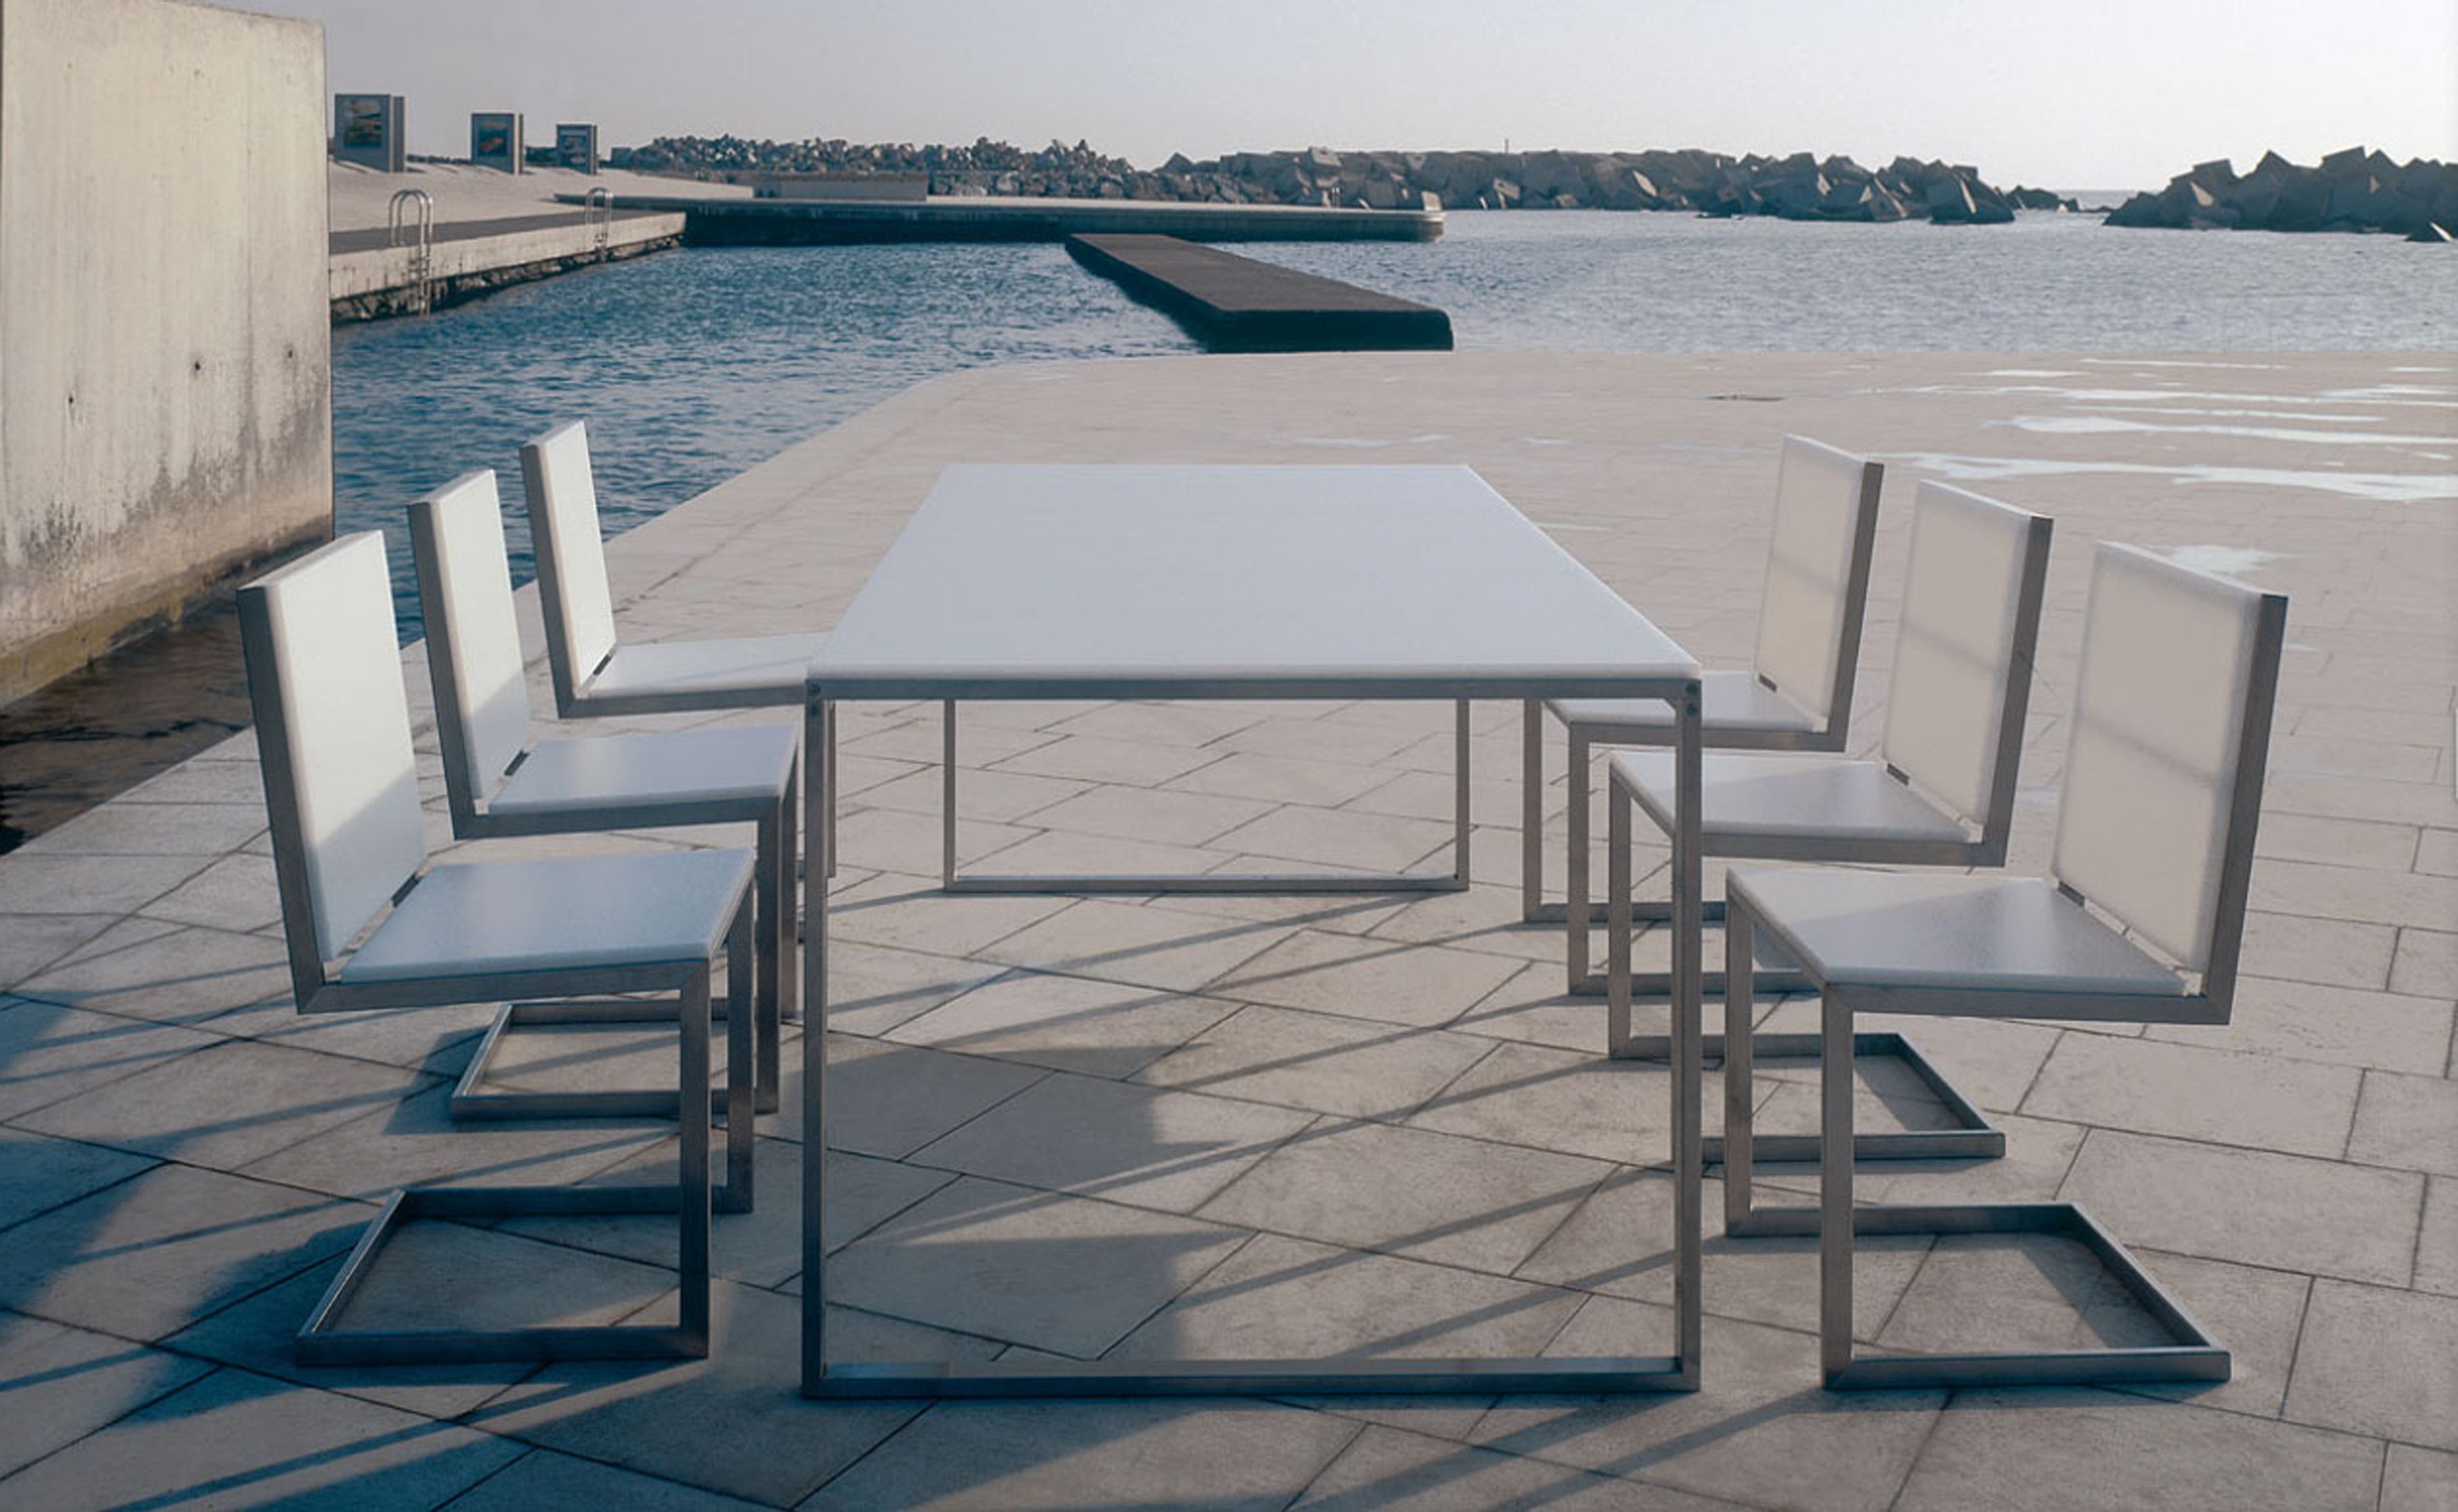 Appealing Modern Outdoor Dining Design Idea With White Dining Table And White Chairs Appealing Modern Outdoor Dining Design Ideas (View 11 of 28)